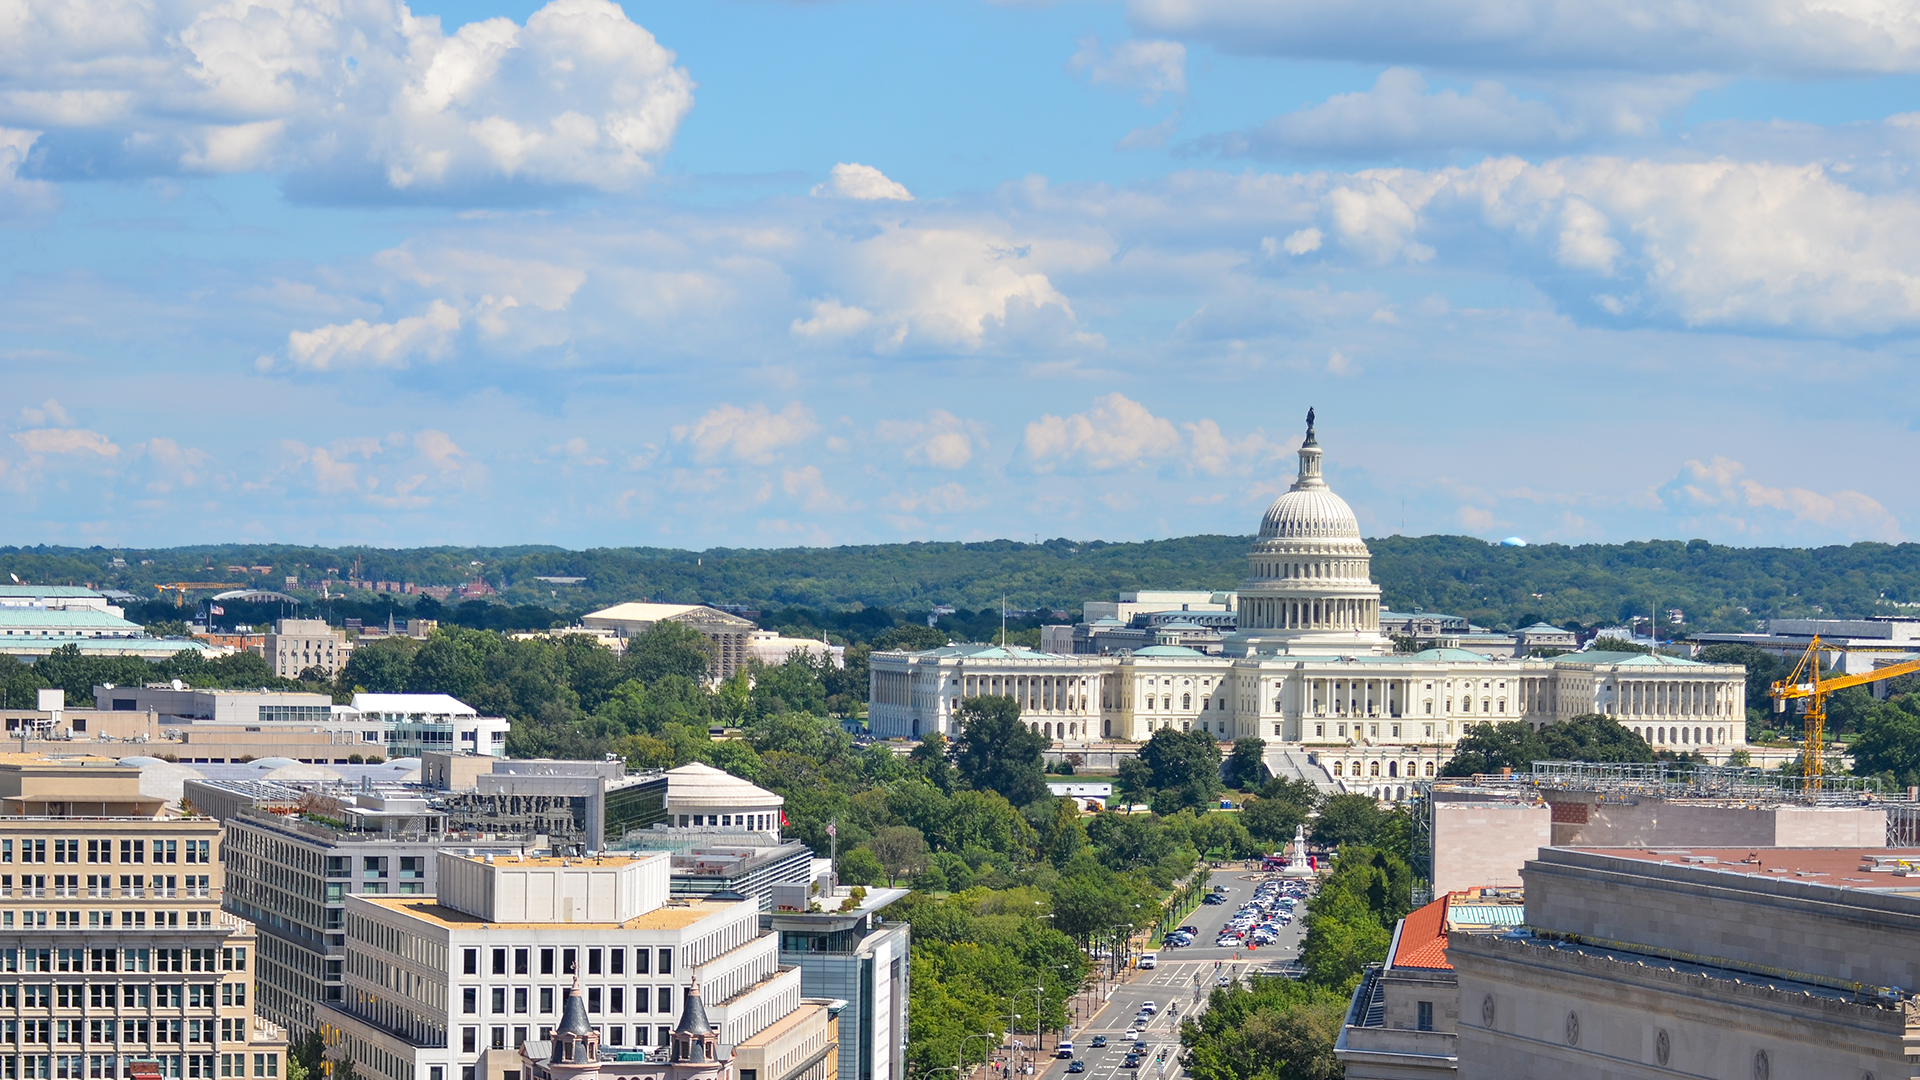 New federal coronavirus response act provides paid leave requirements for some employers